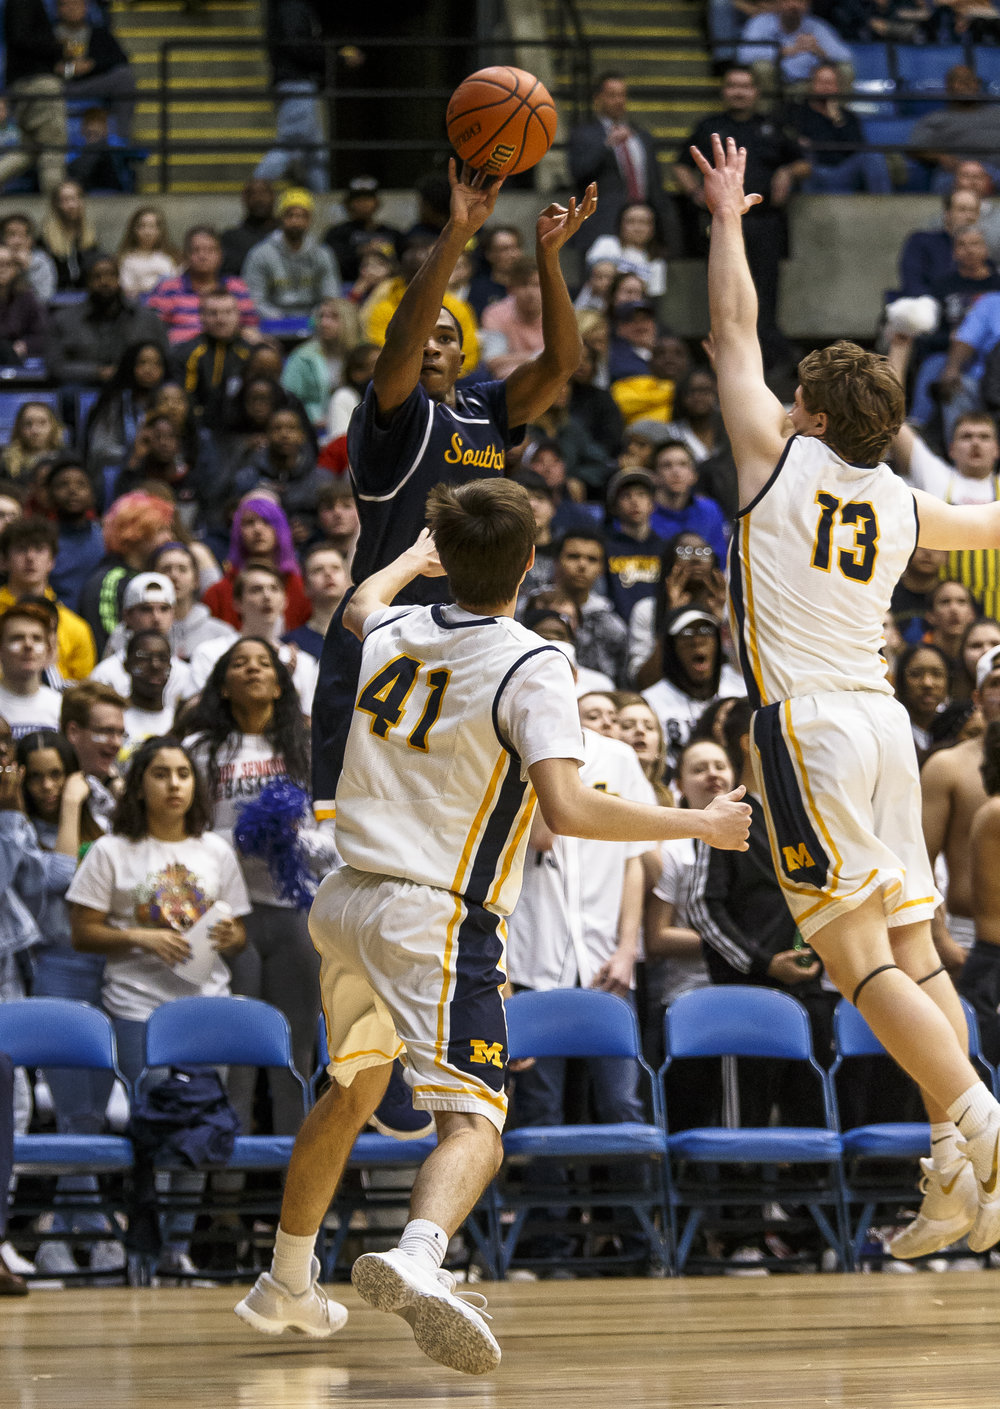 Southeast's Kobe Medley (11) shoes a 3-pointer against Marion's Cole Schafer (41) and Marion's Justin Saddoris (13) in the second half during the Class 3A Springfield Supersectional at the Bank of Springfield Center, Tuesday, March 13, 2018, in Springfield, Ill. [Justin L. Fowler/The State Journal-Register]